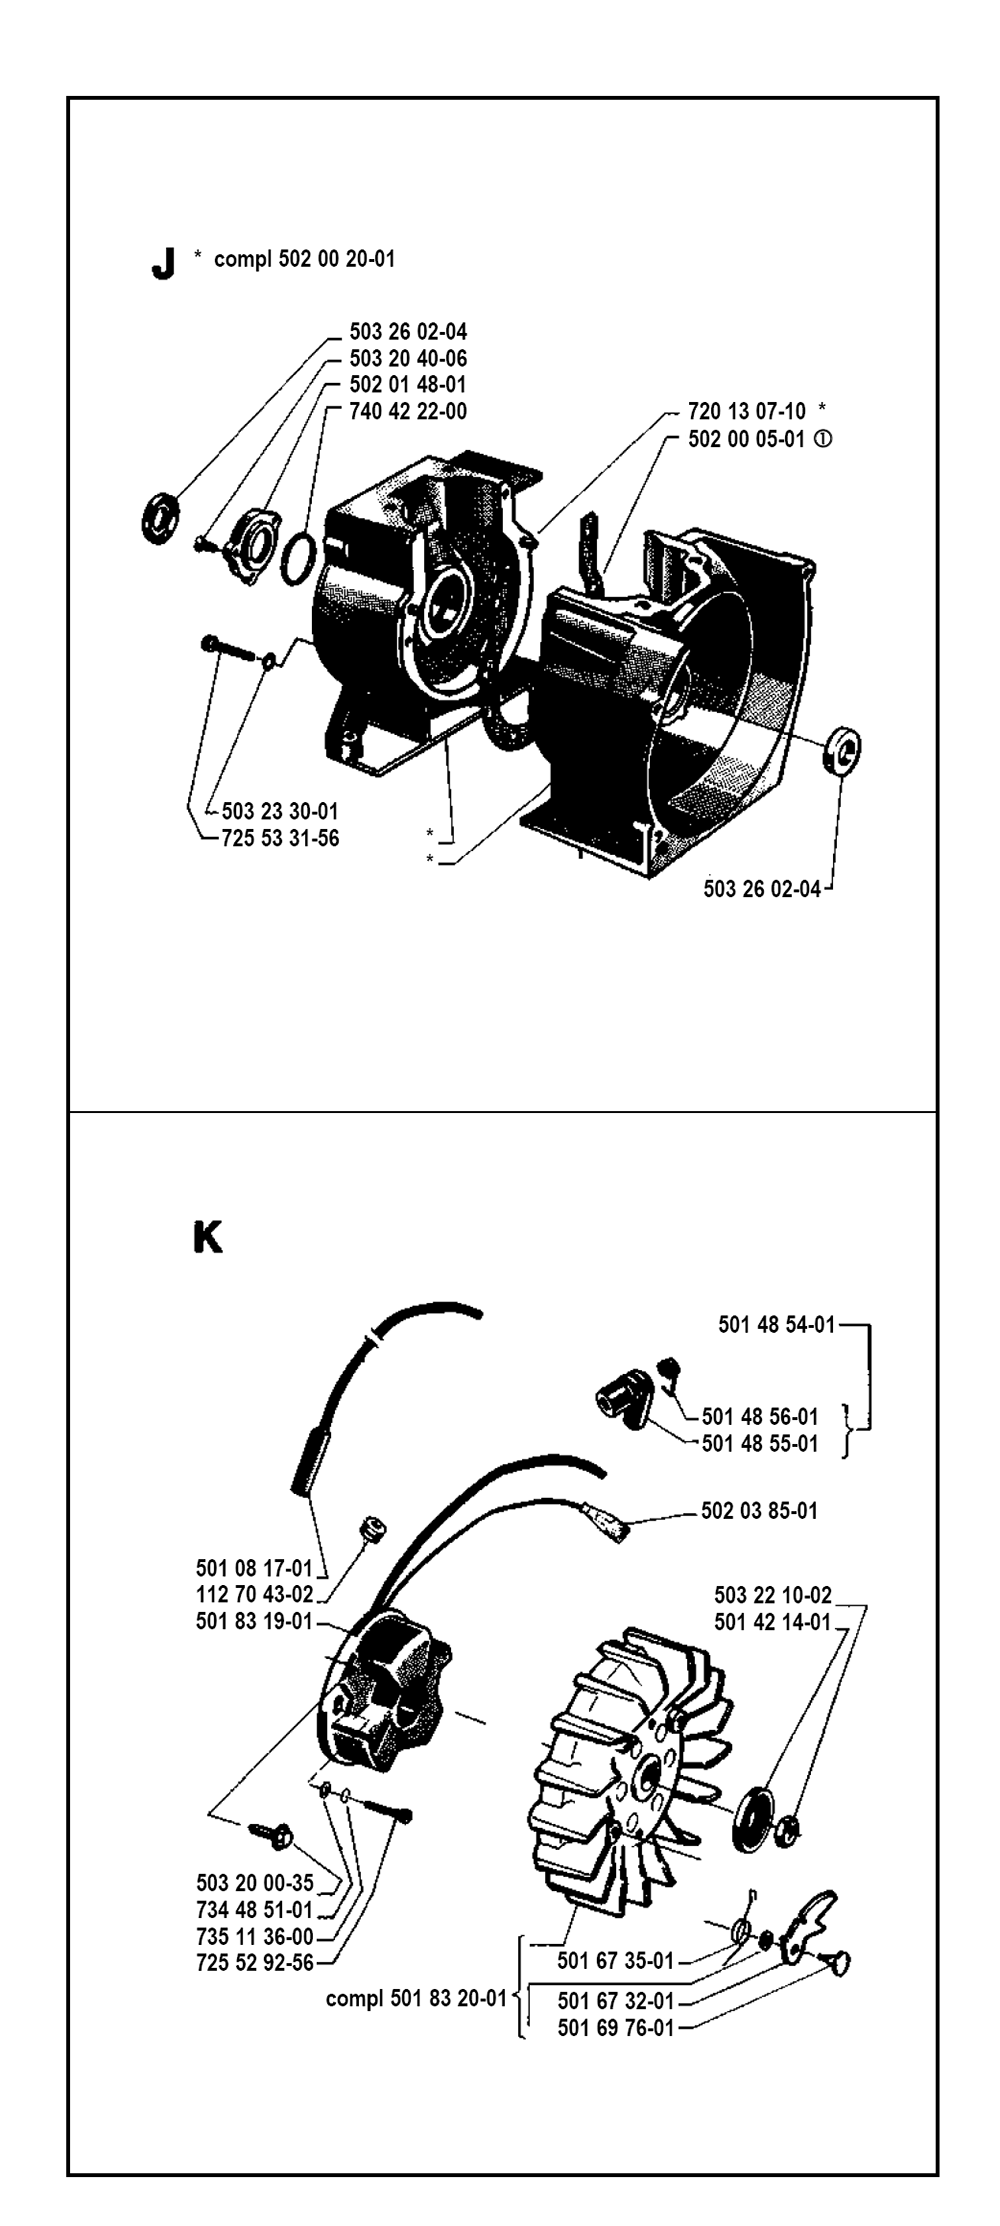 165 RX-(I8600001)-Husqvarna-PB-4Break Down